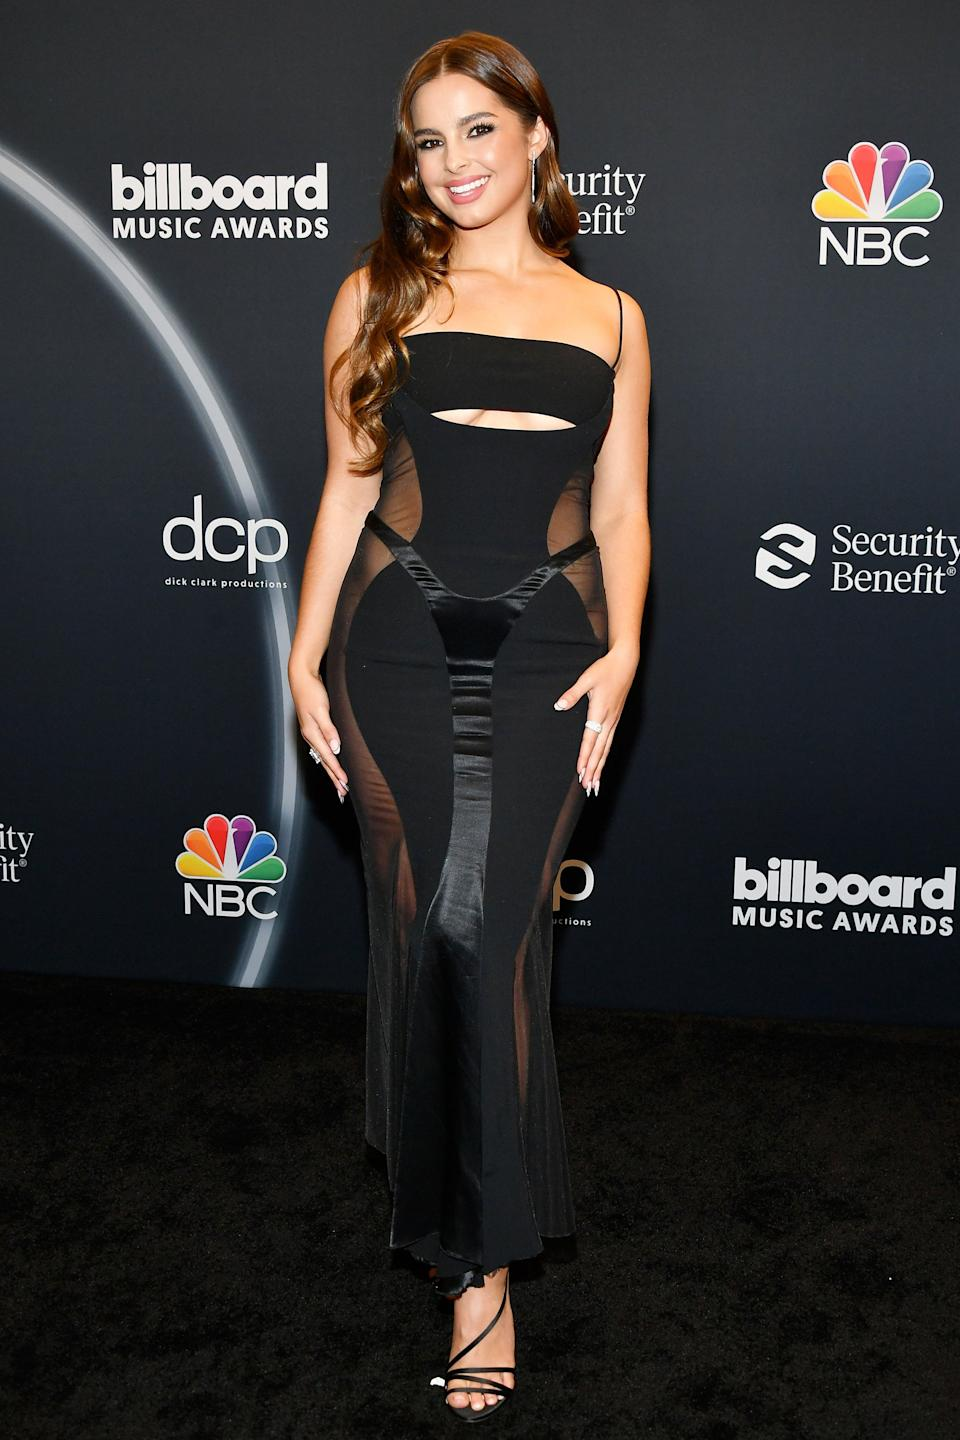 """<h2>Addison Rae in Mugler</h2><br>TikTok star Addison Rae took a cue from her lockdown BFF Kourtney Kardashian and wore a black, ultra-sexy Mugler dress to the BBMAs this year. <span class=""""copyright"""">Photo: Amy Sussman/BBMA2020/Getty Images for dcp.</span>"""